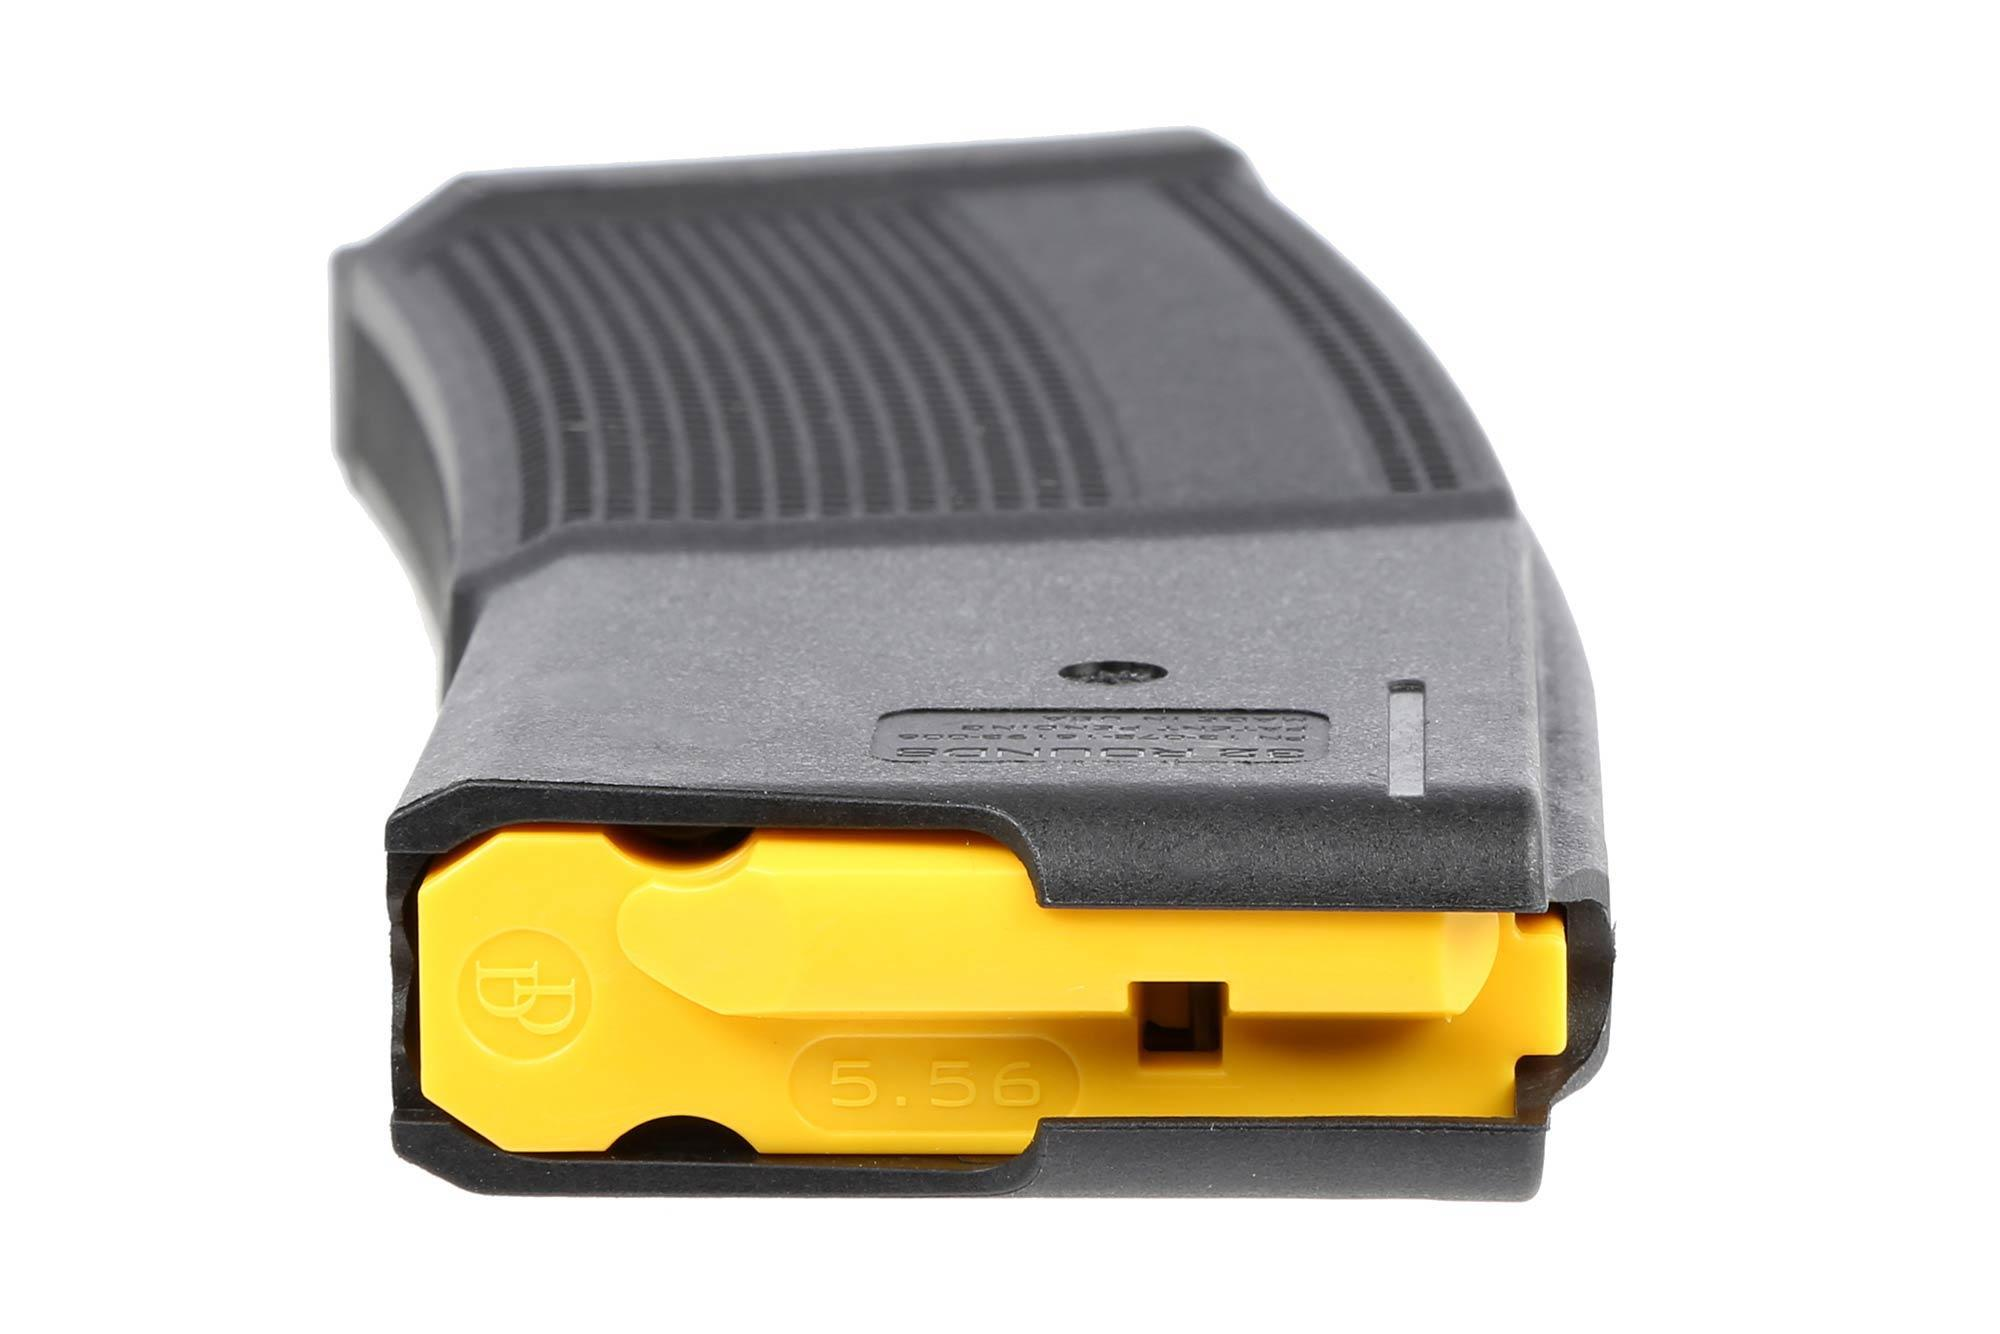 The Daniel Defense polymer magazine 5.56 NATO is extremely lightweight and durable